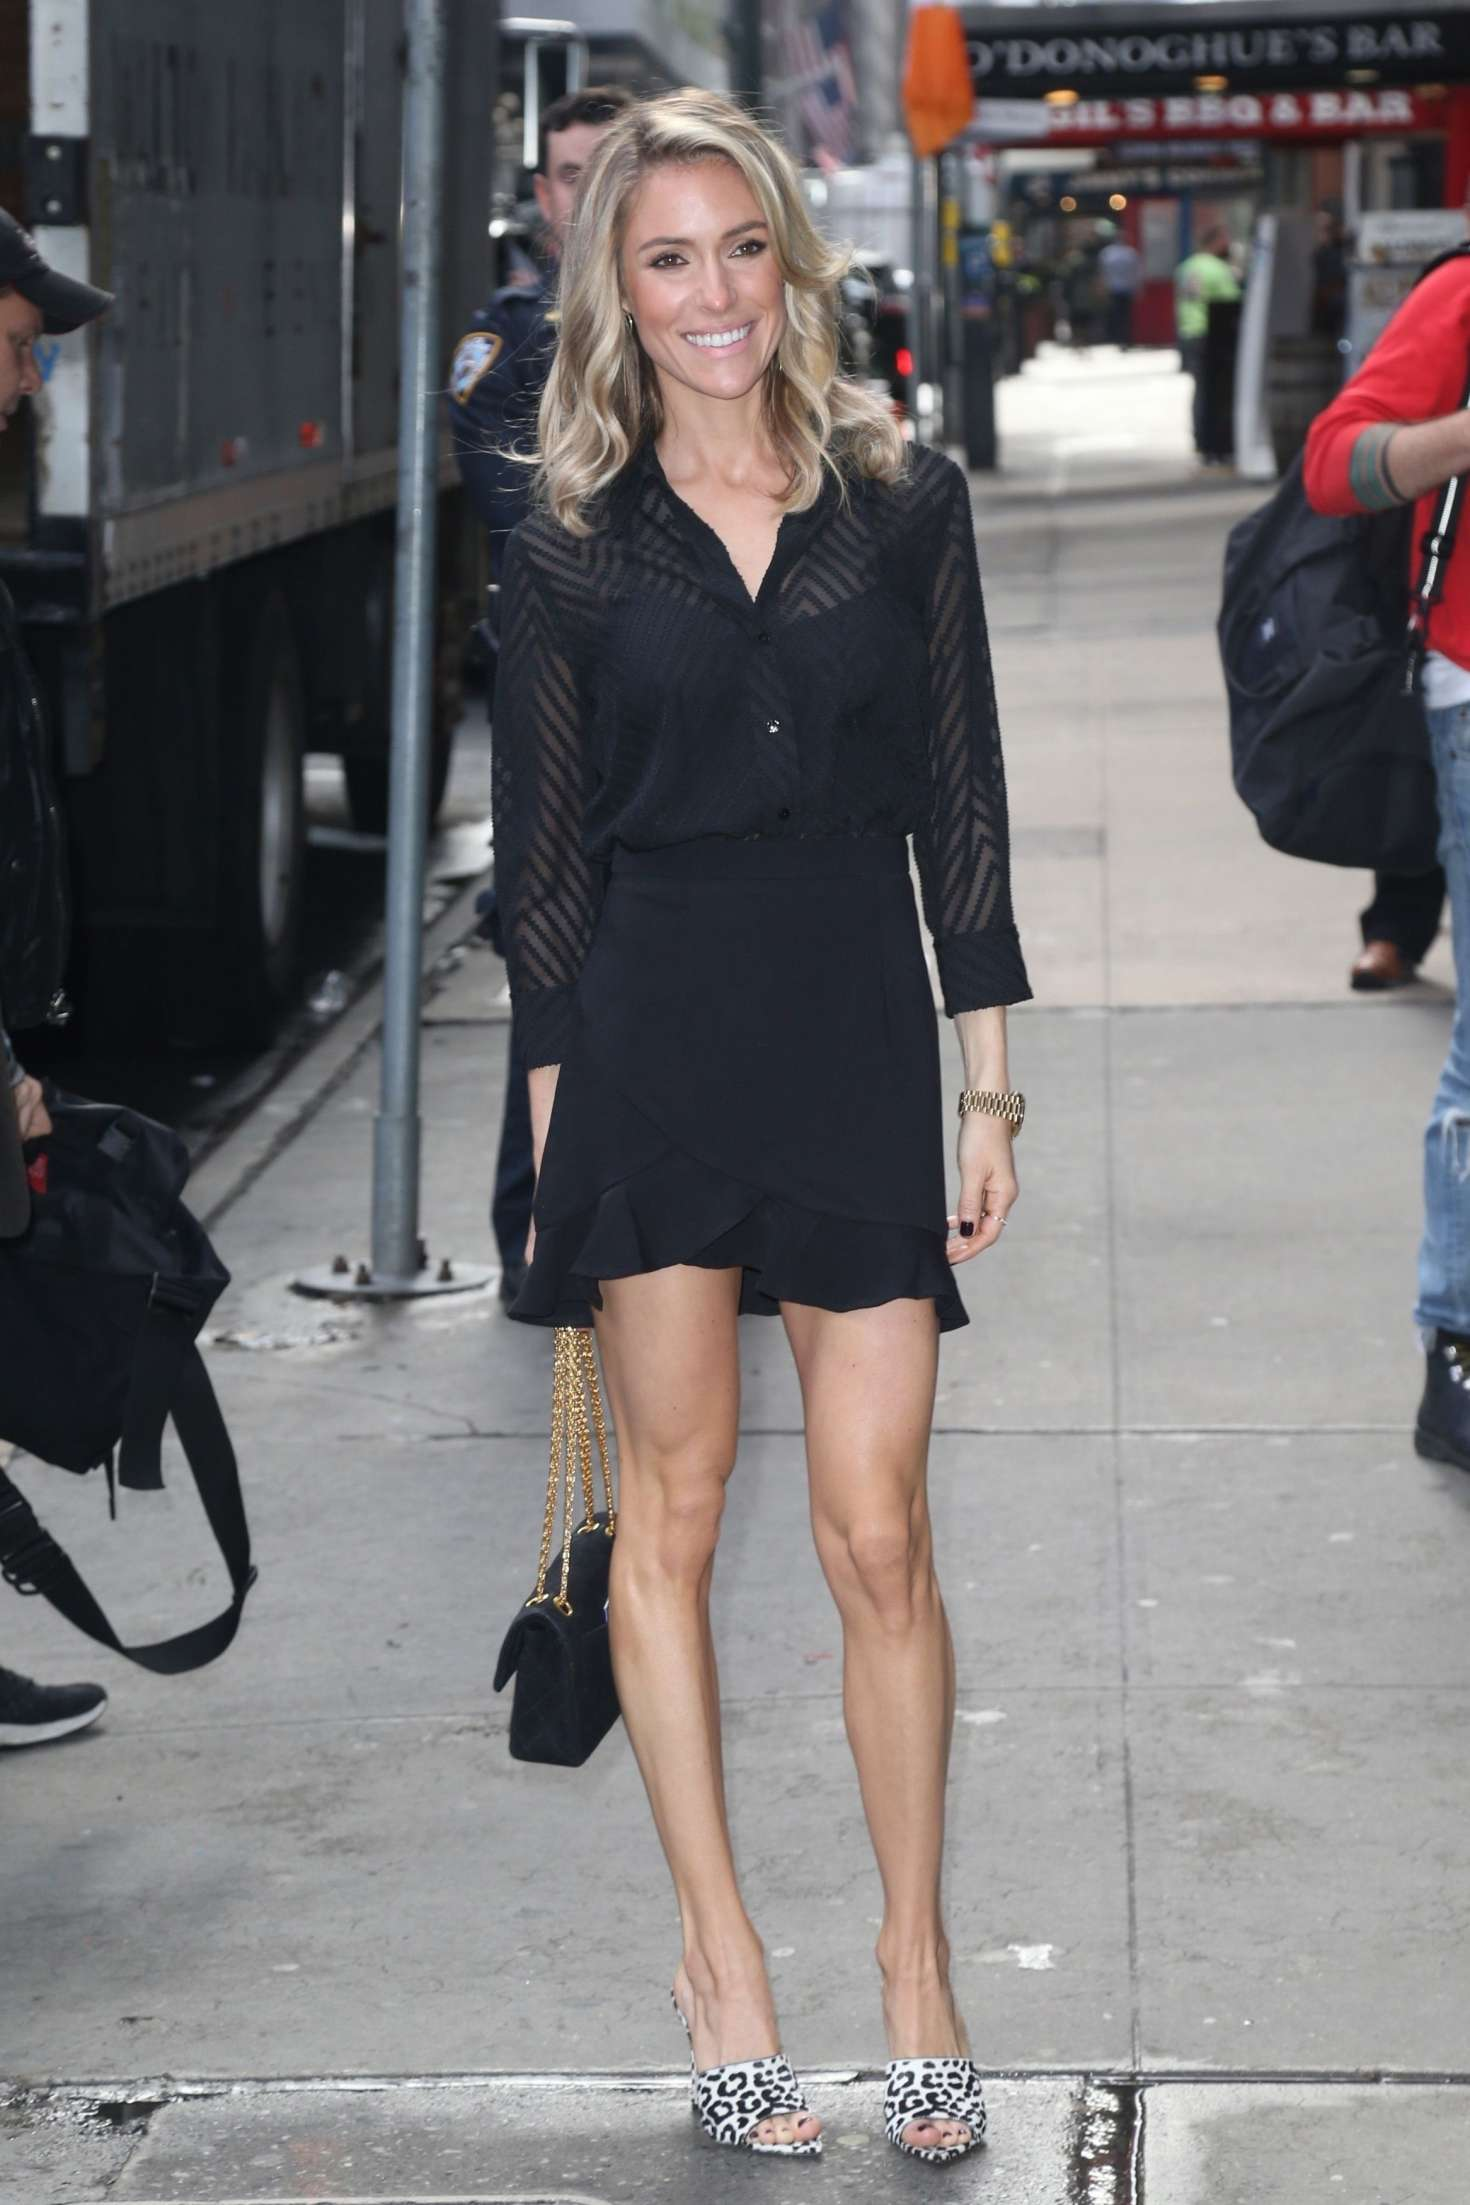 Kristin Cavallari 2019 : Kristin Cavallari: Heads to Good Morning America -02